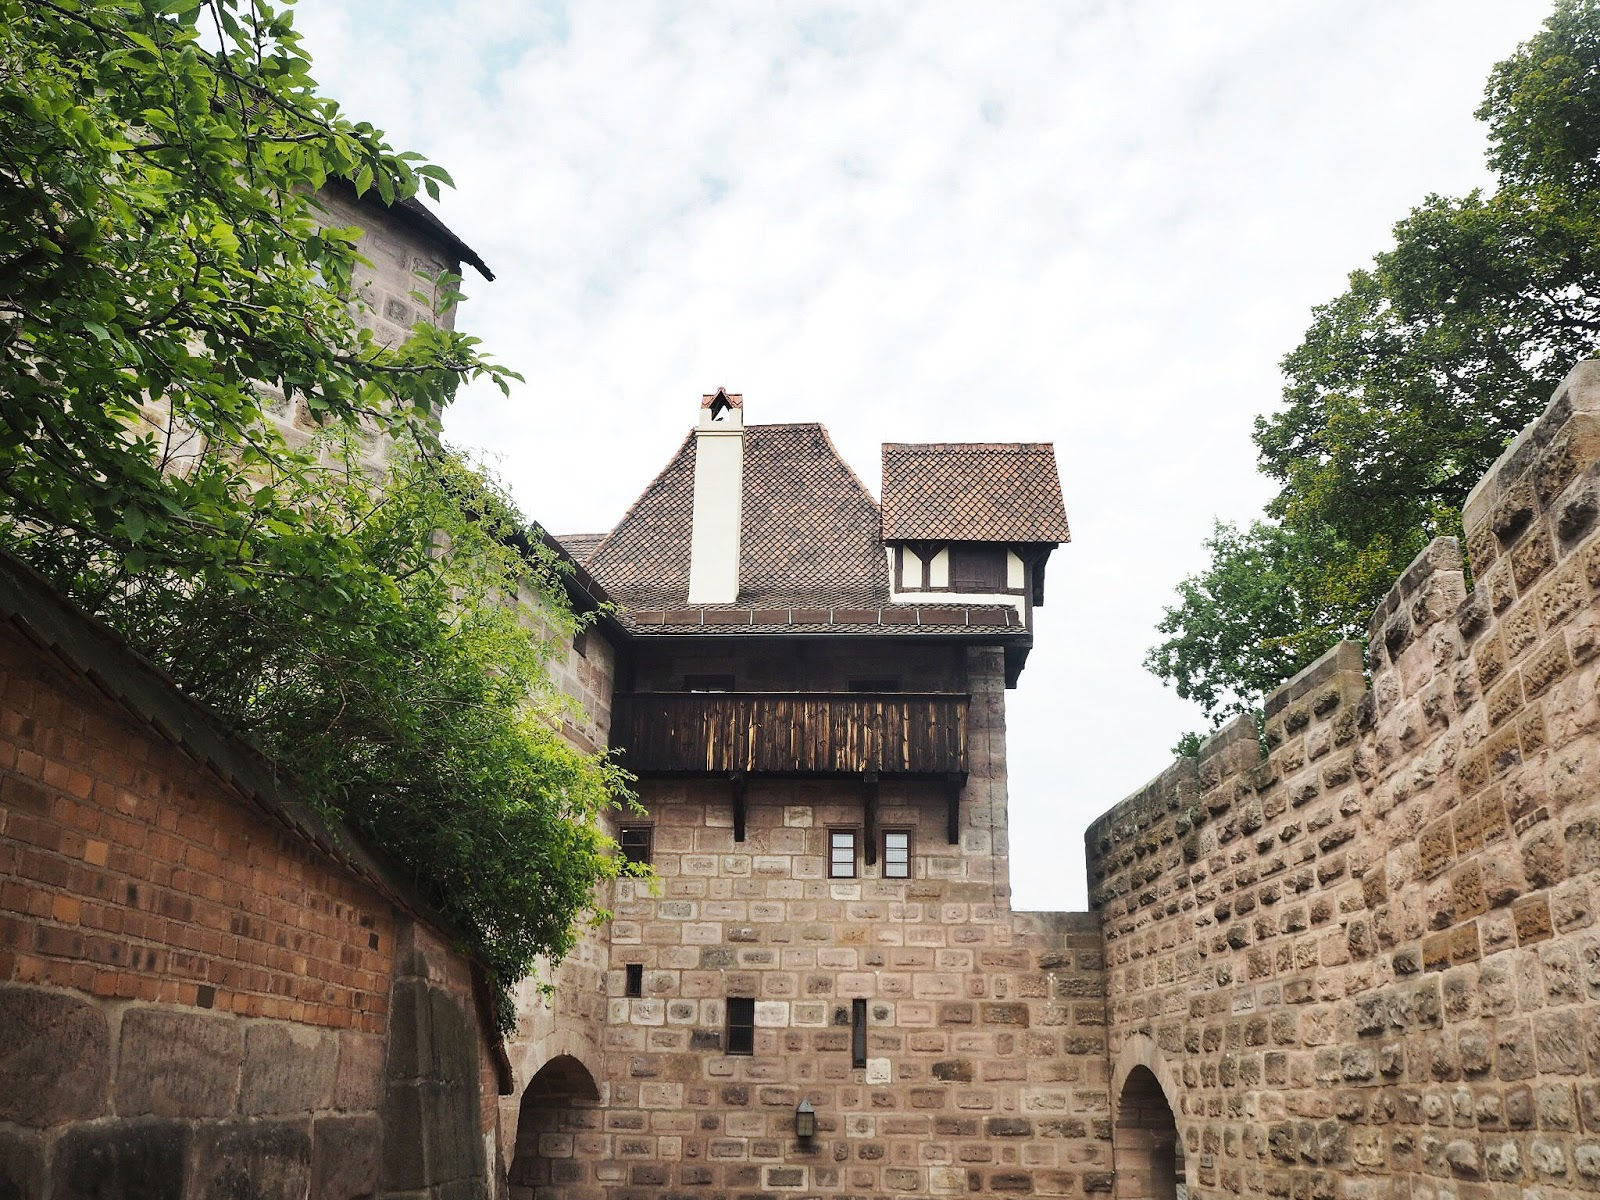 One day in Nuremberg - Nuremberg castle